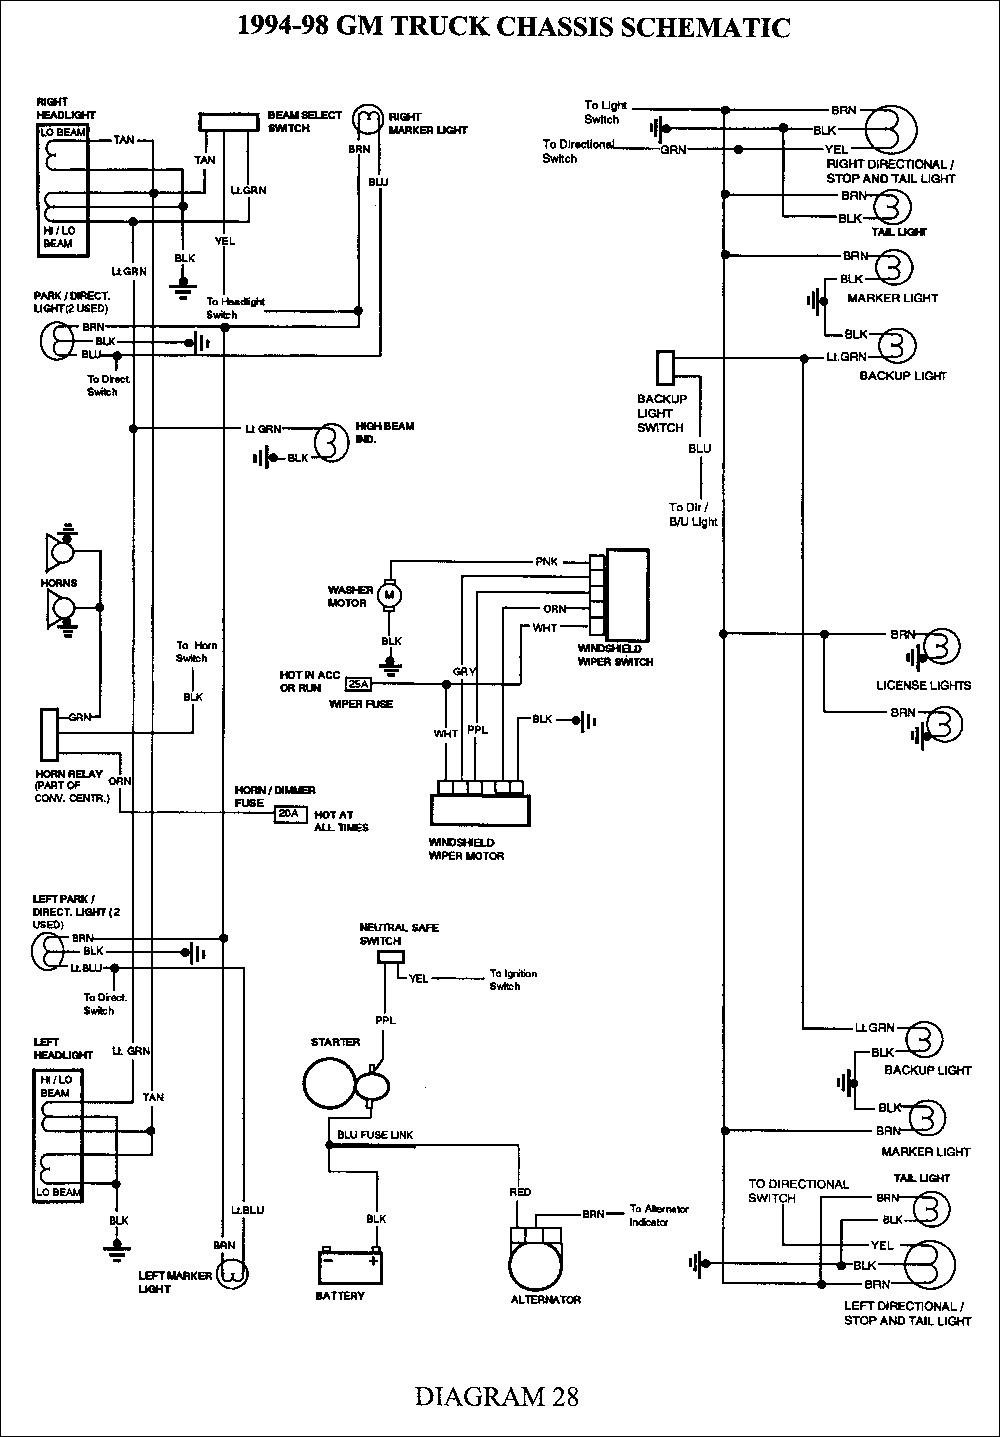 chevrolet silverado wiring diagrams carbonvote mudit blog \u20222000 chevrolet silverado 1500 wiring diagram 14 12 asyaunited de u2022 rh 14 12 asyaunited de